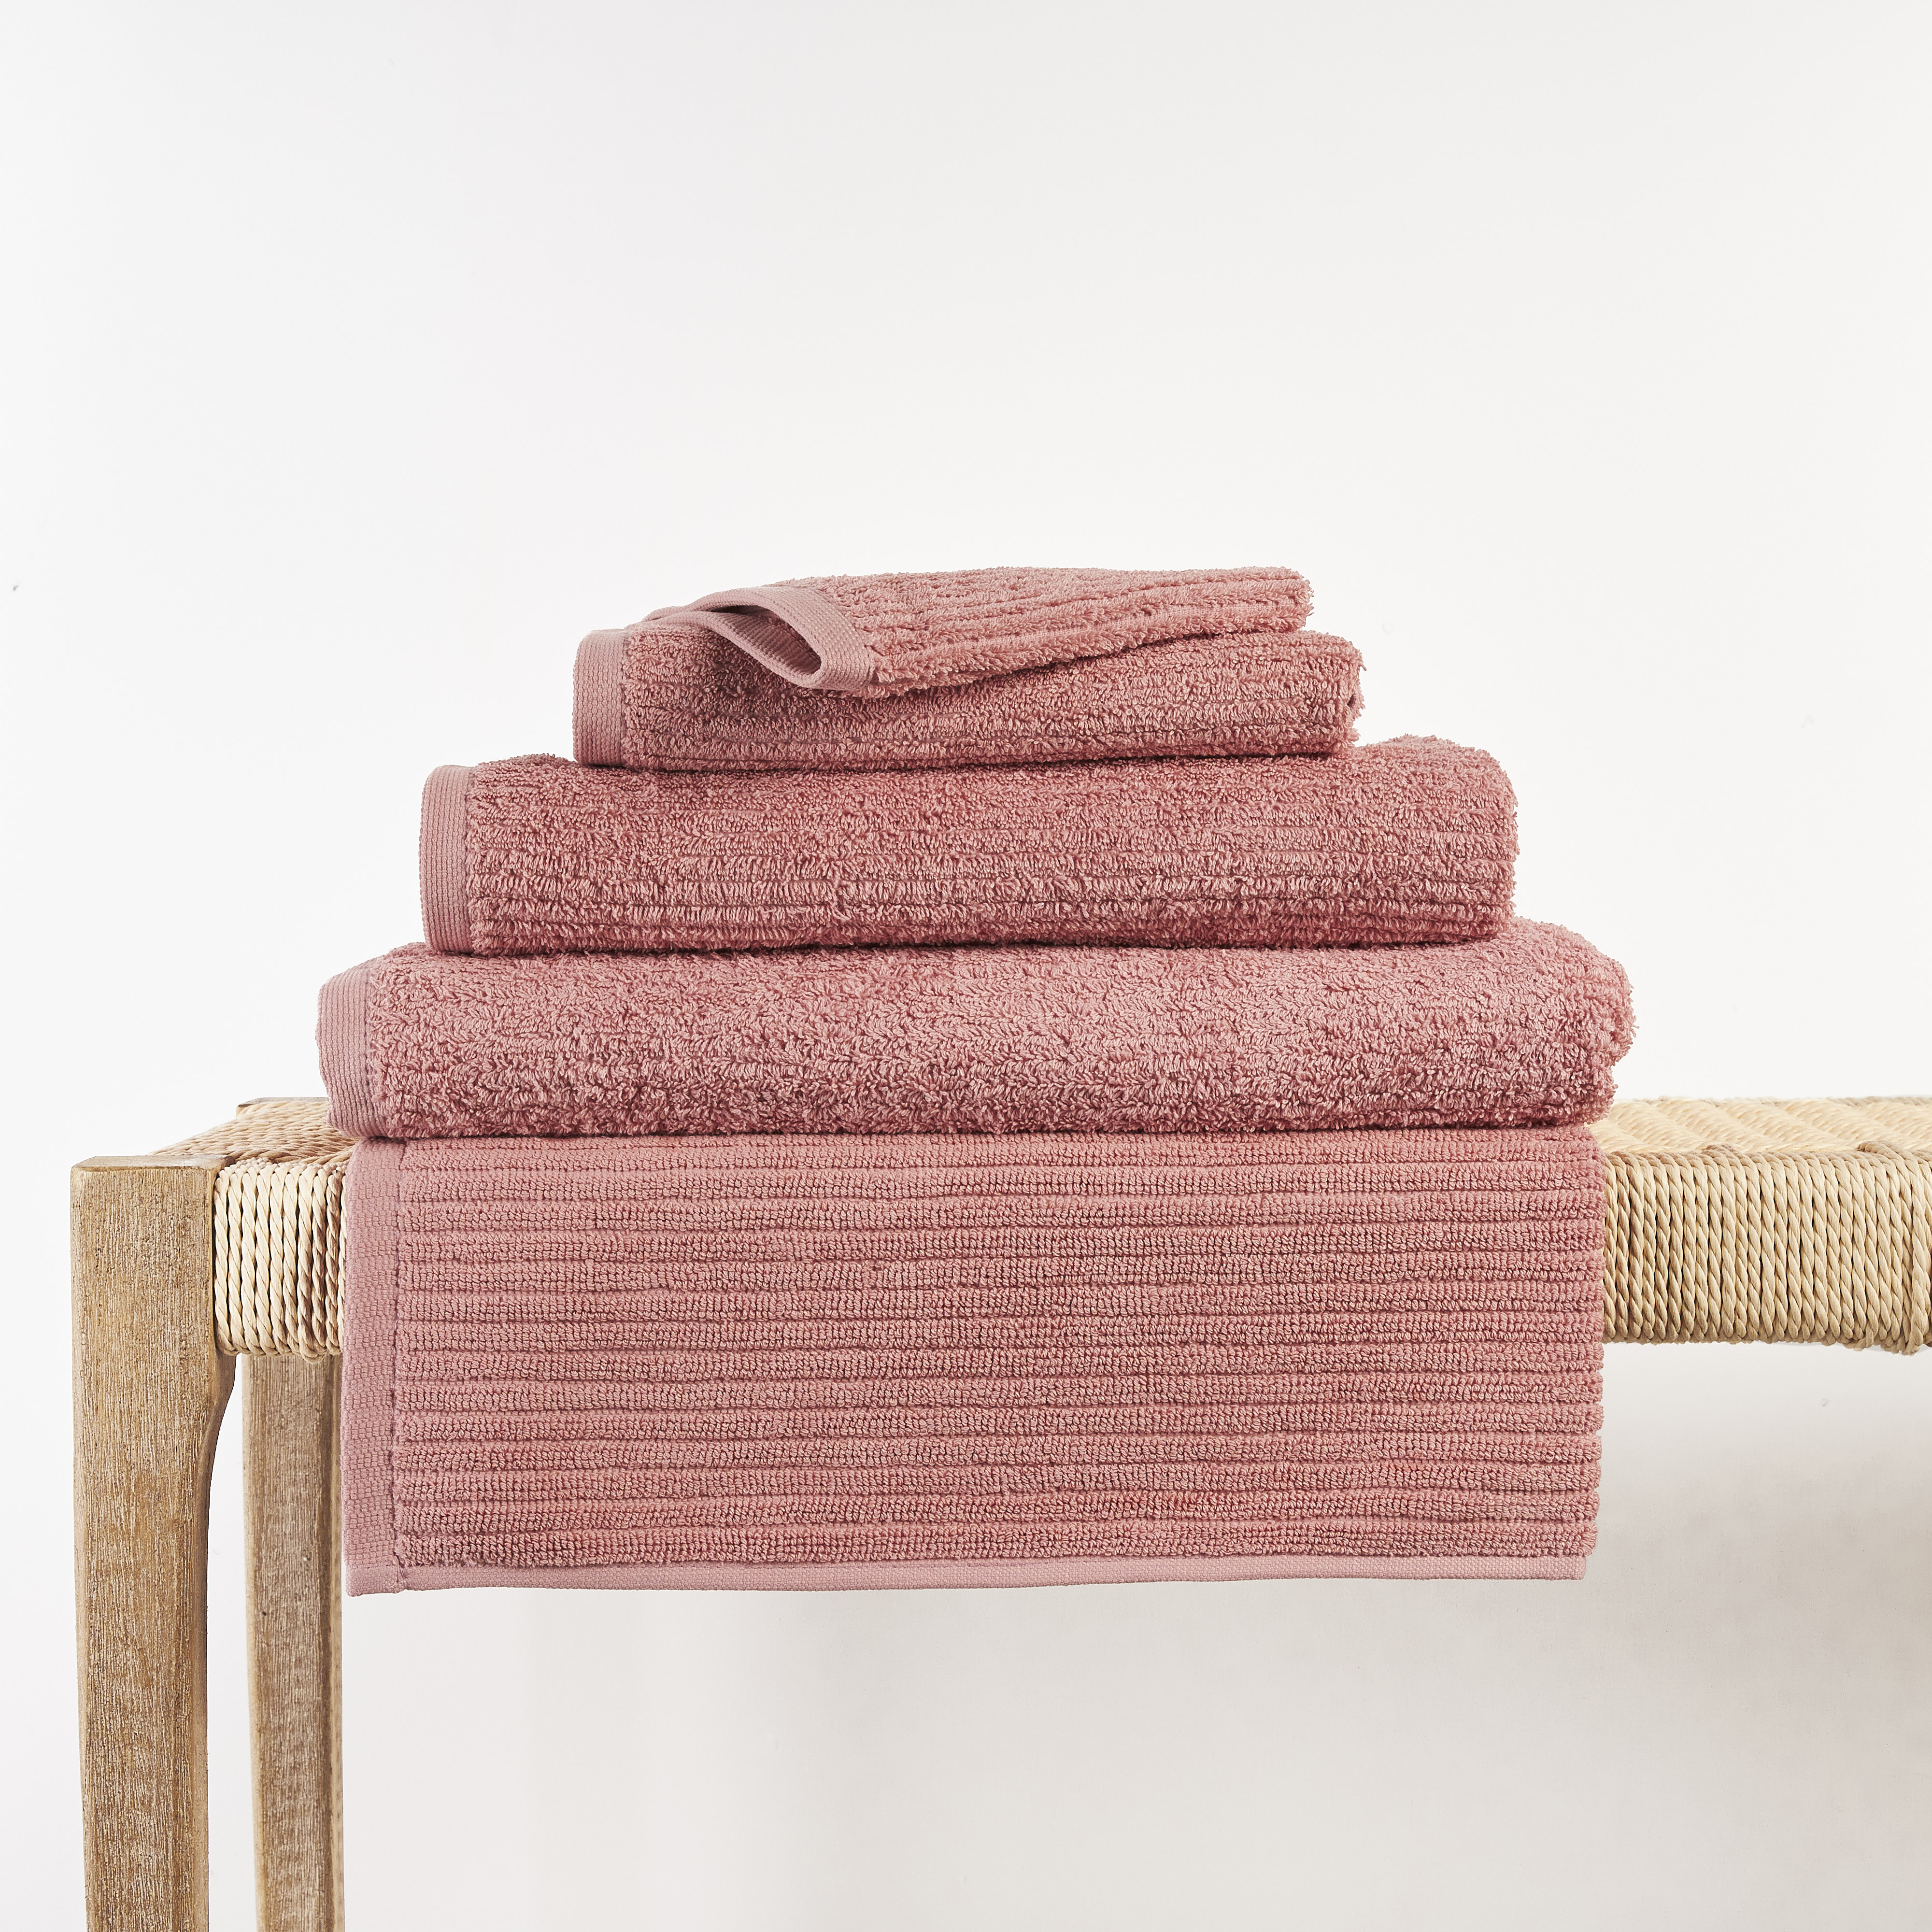 In2linen Classic Egyptian Cotton Ribbed Towel   Blush Pink